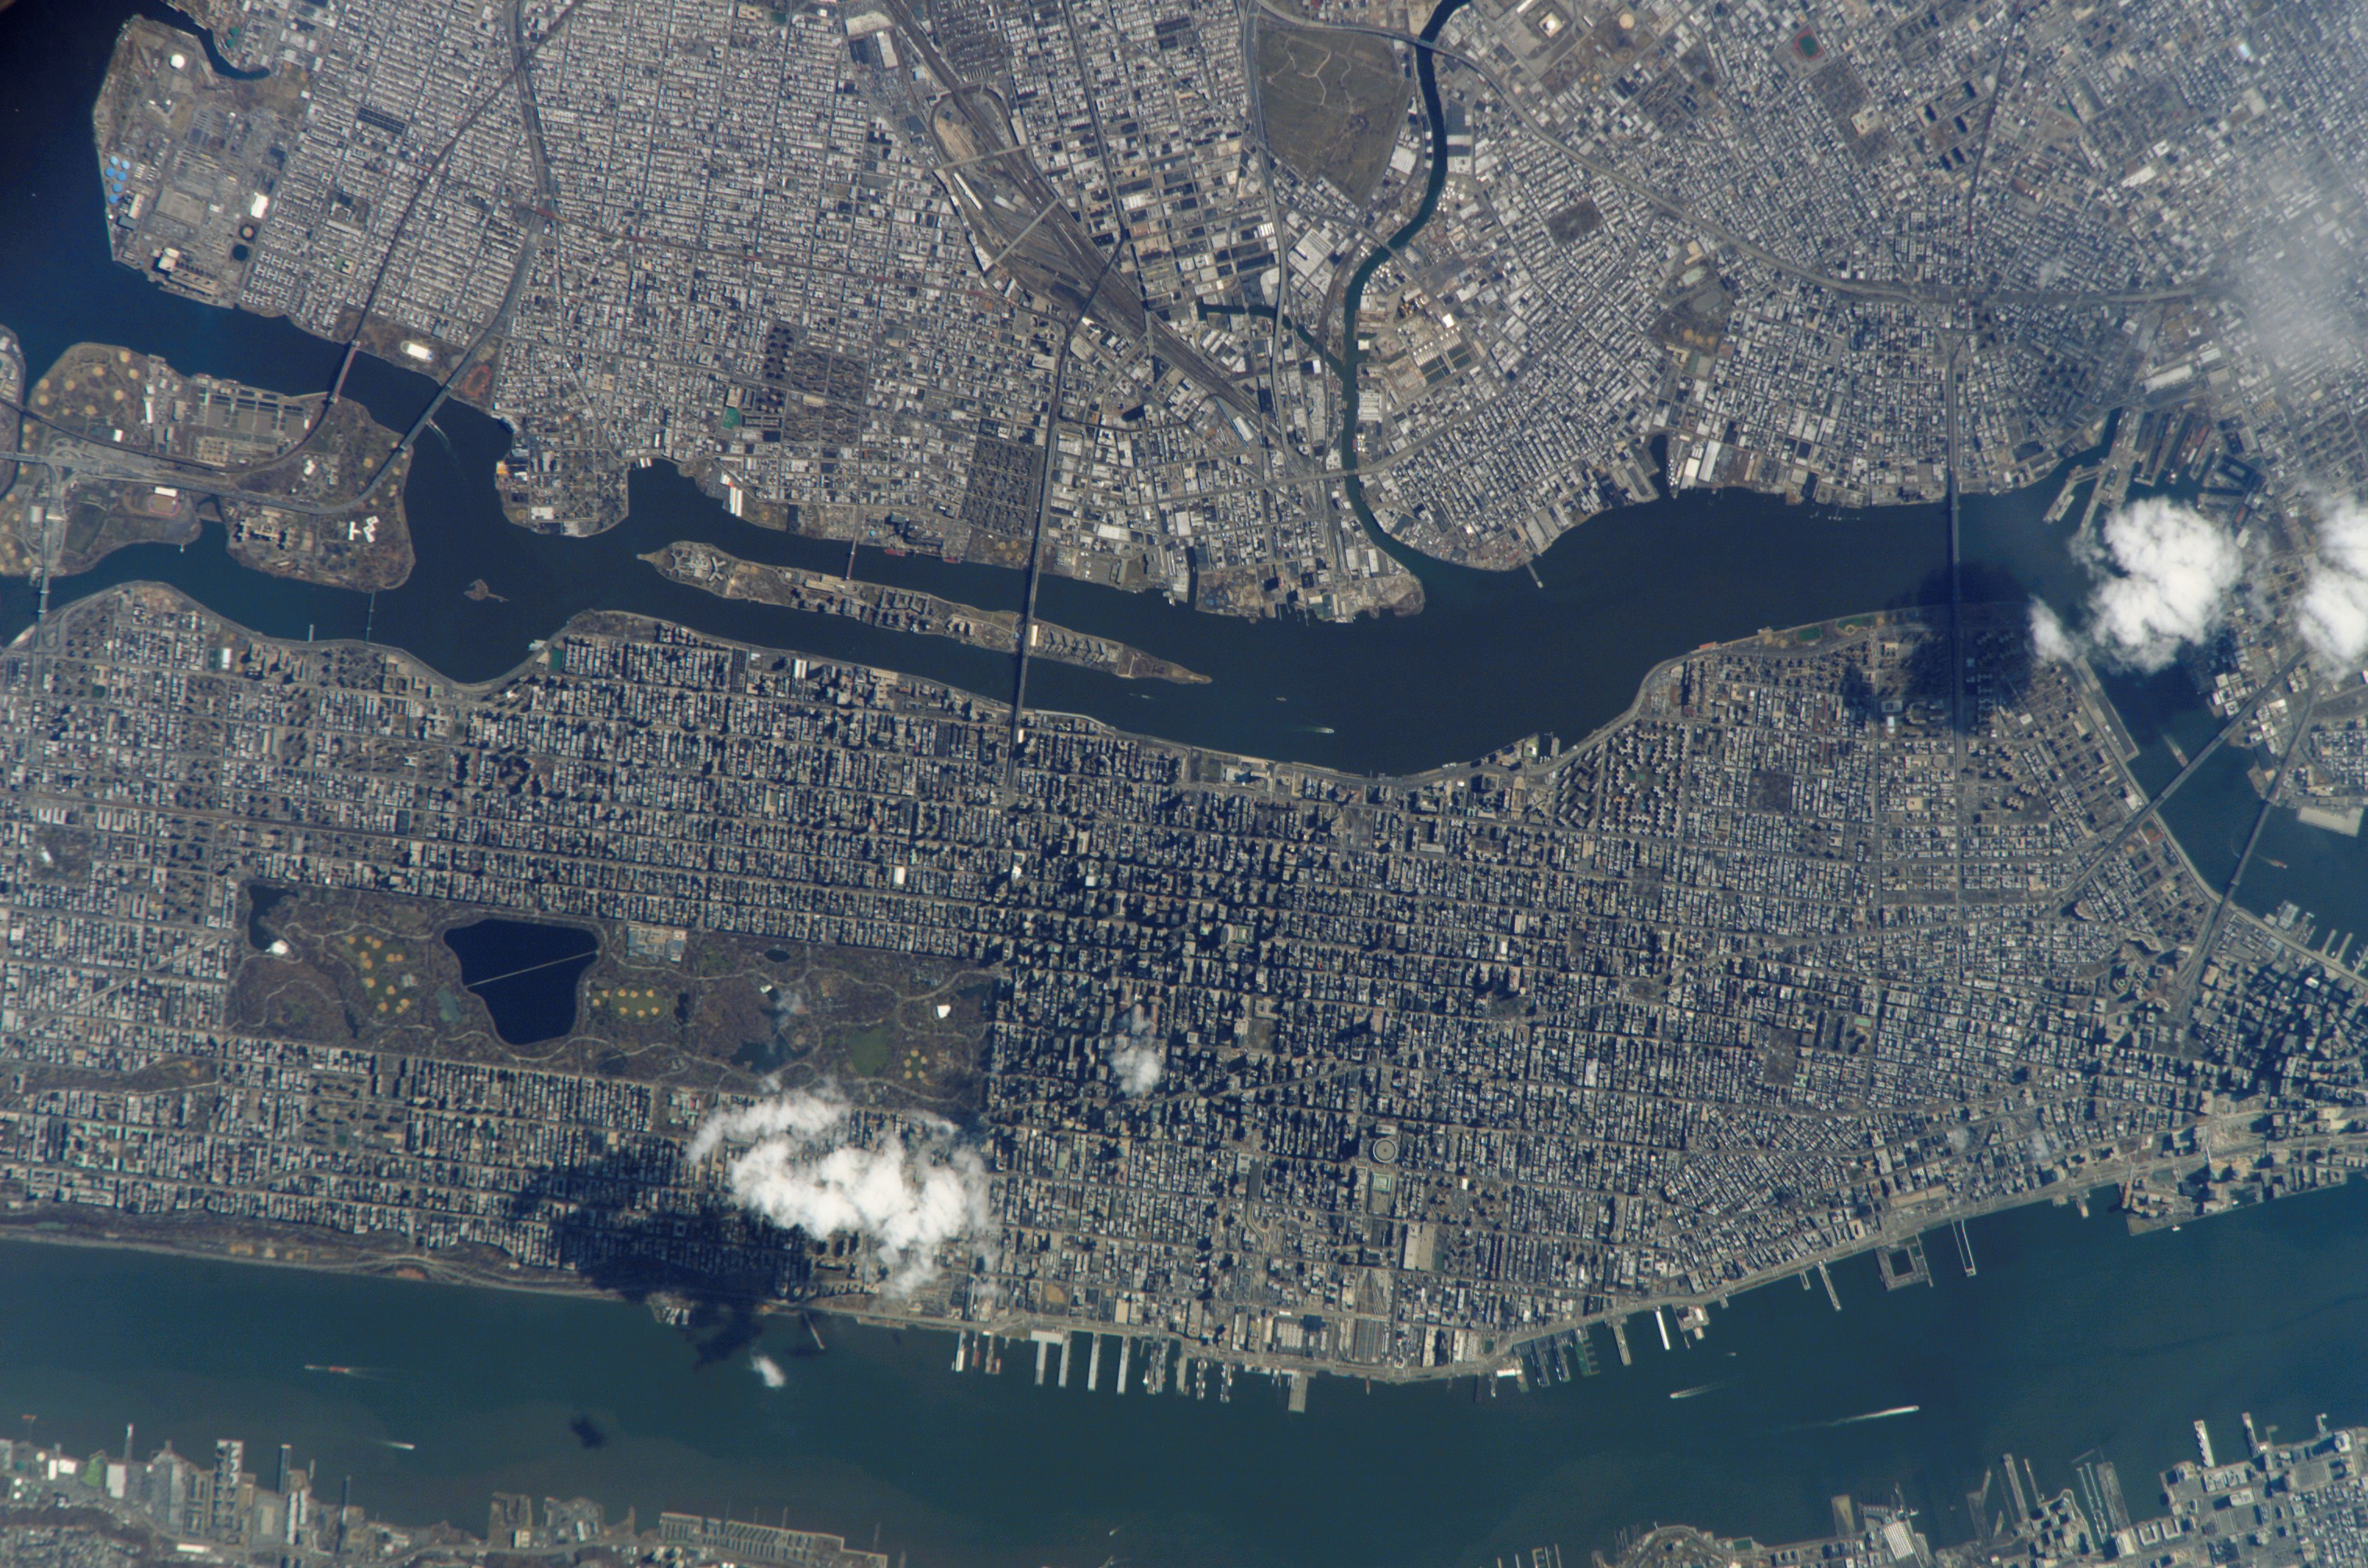 Central Park dominates the shot of New York City.